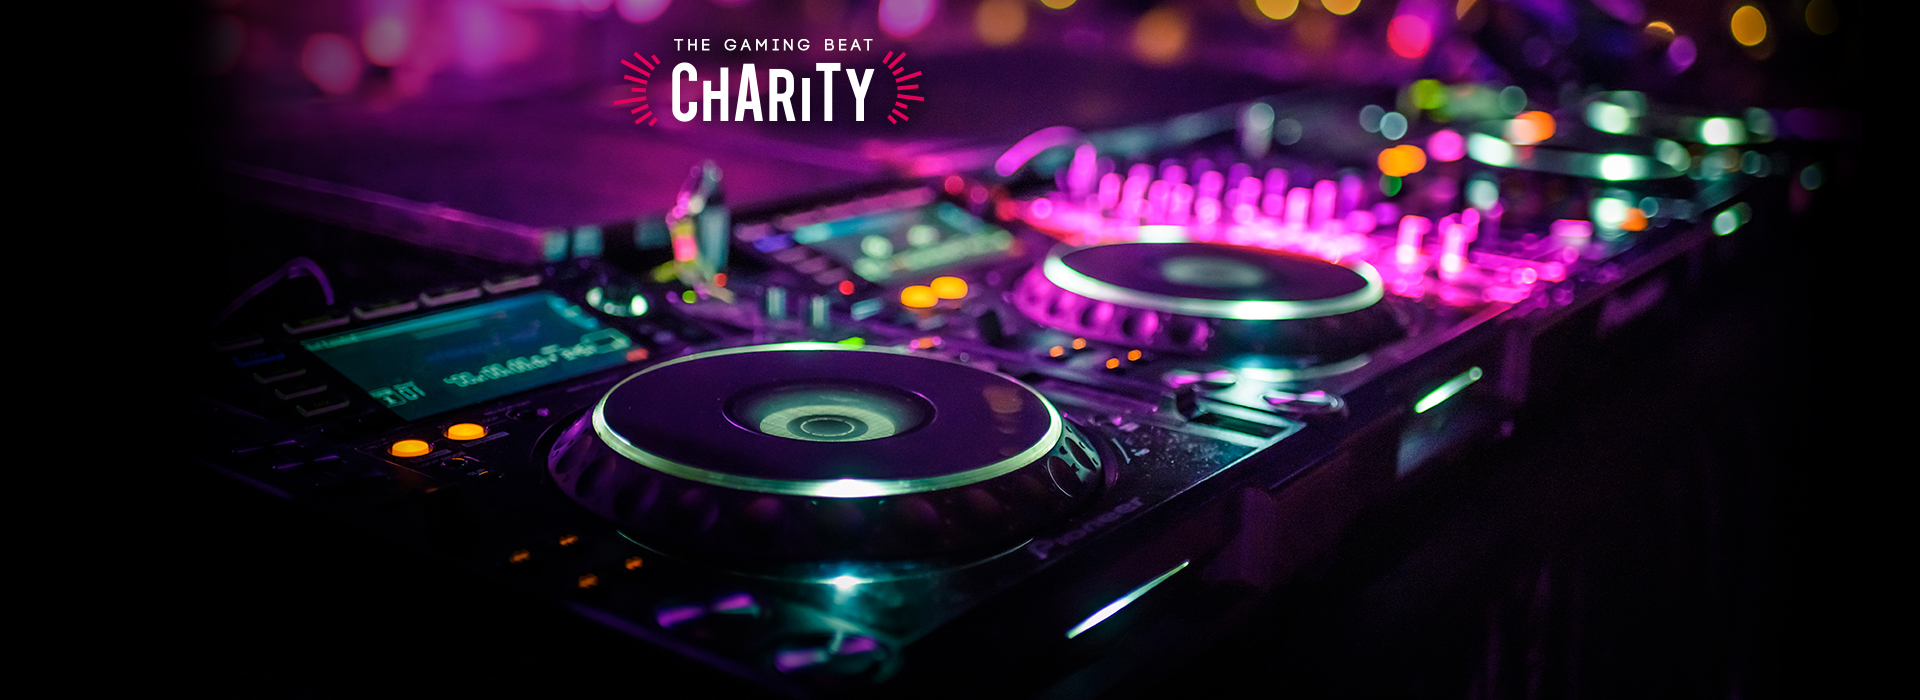 TGB Charity, The Gaming Beat Charity